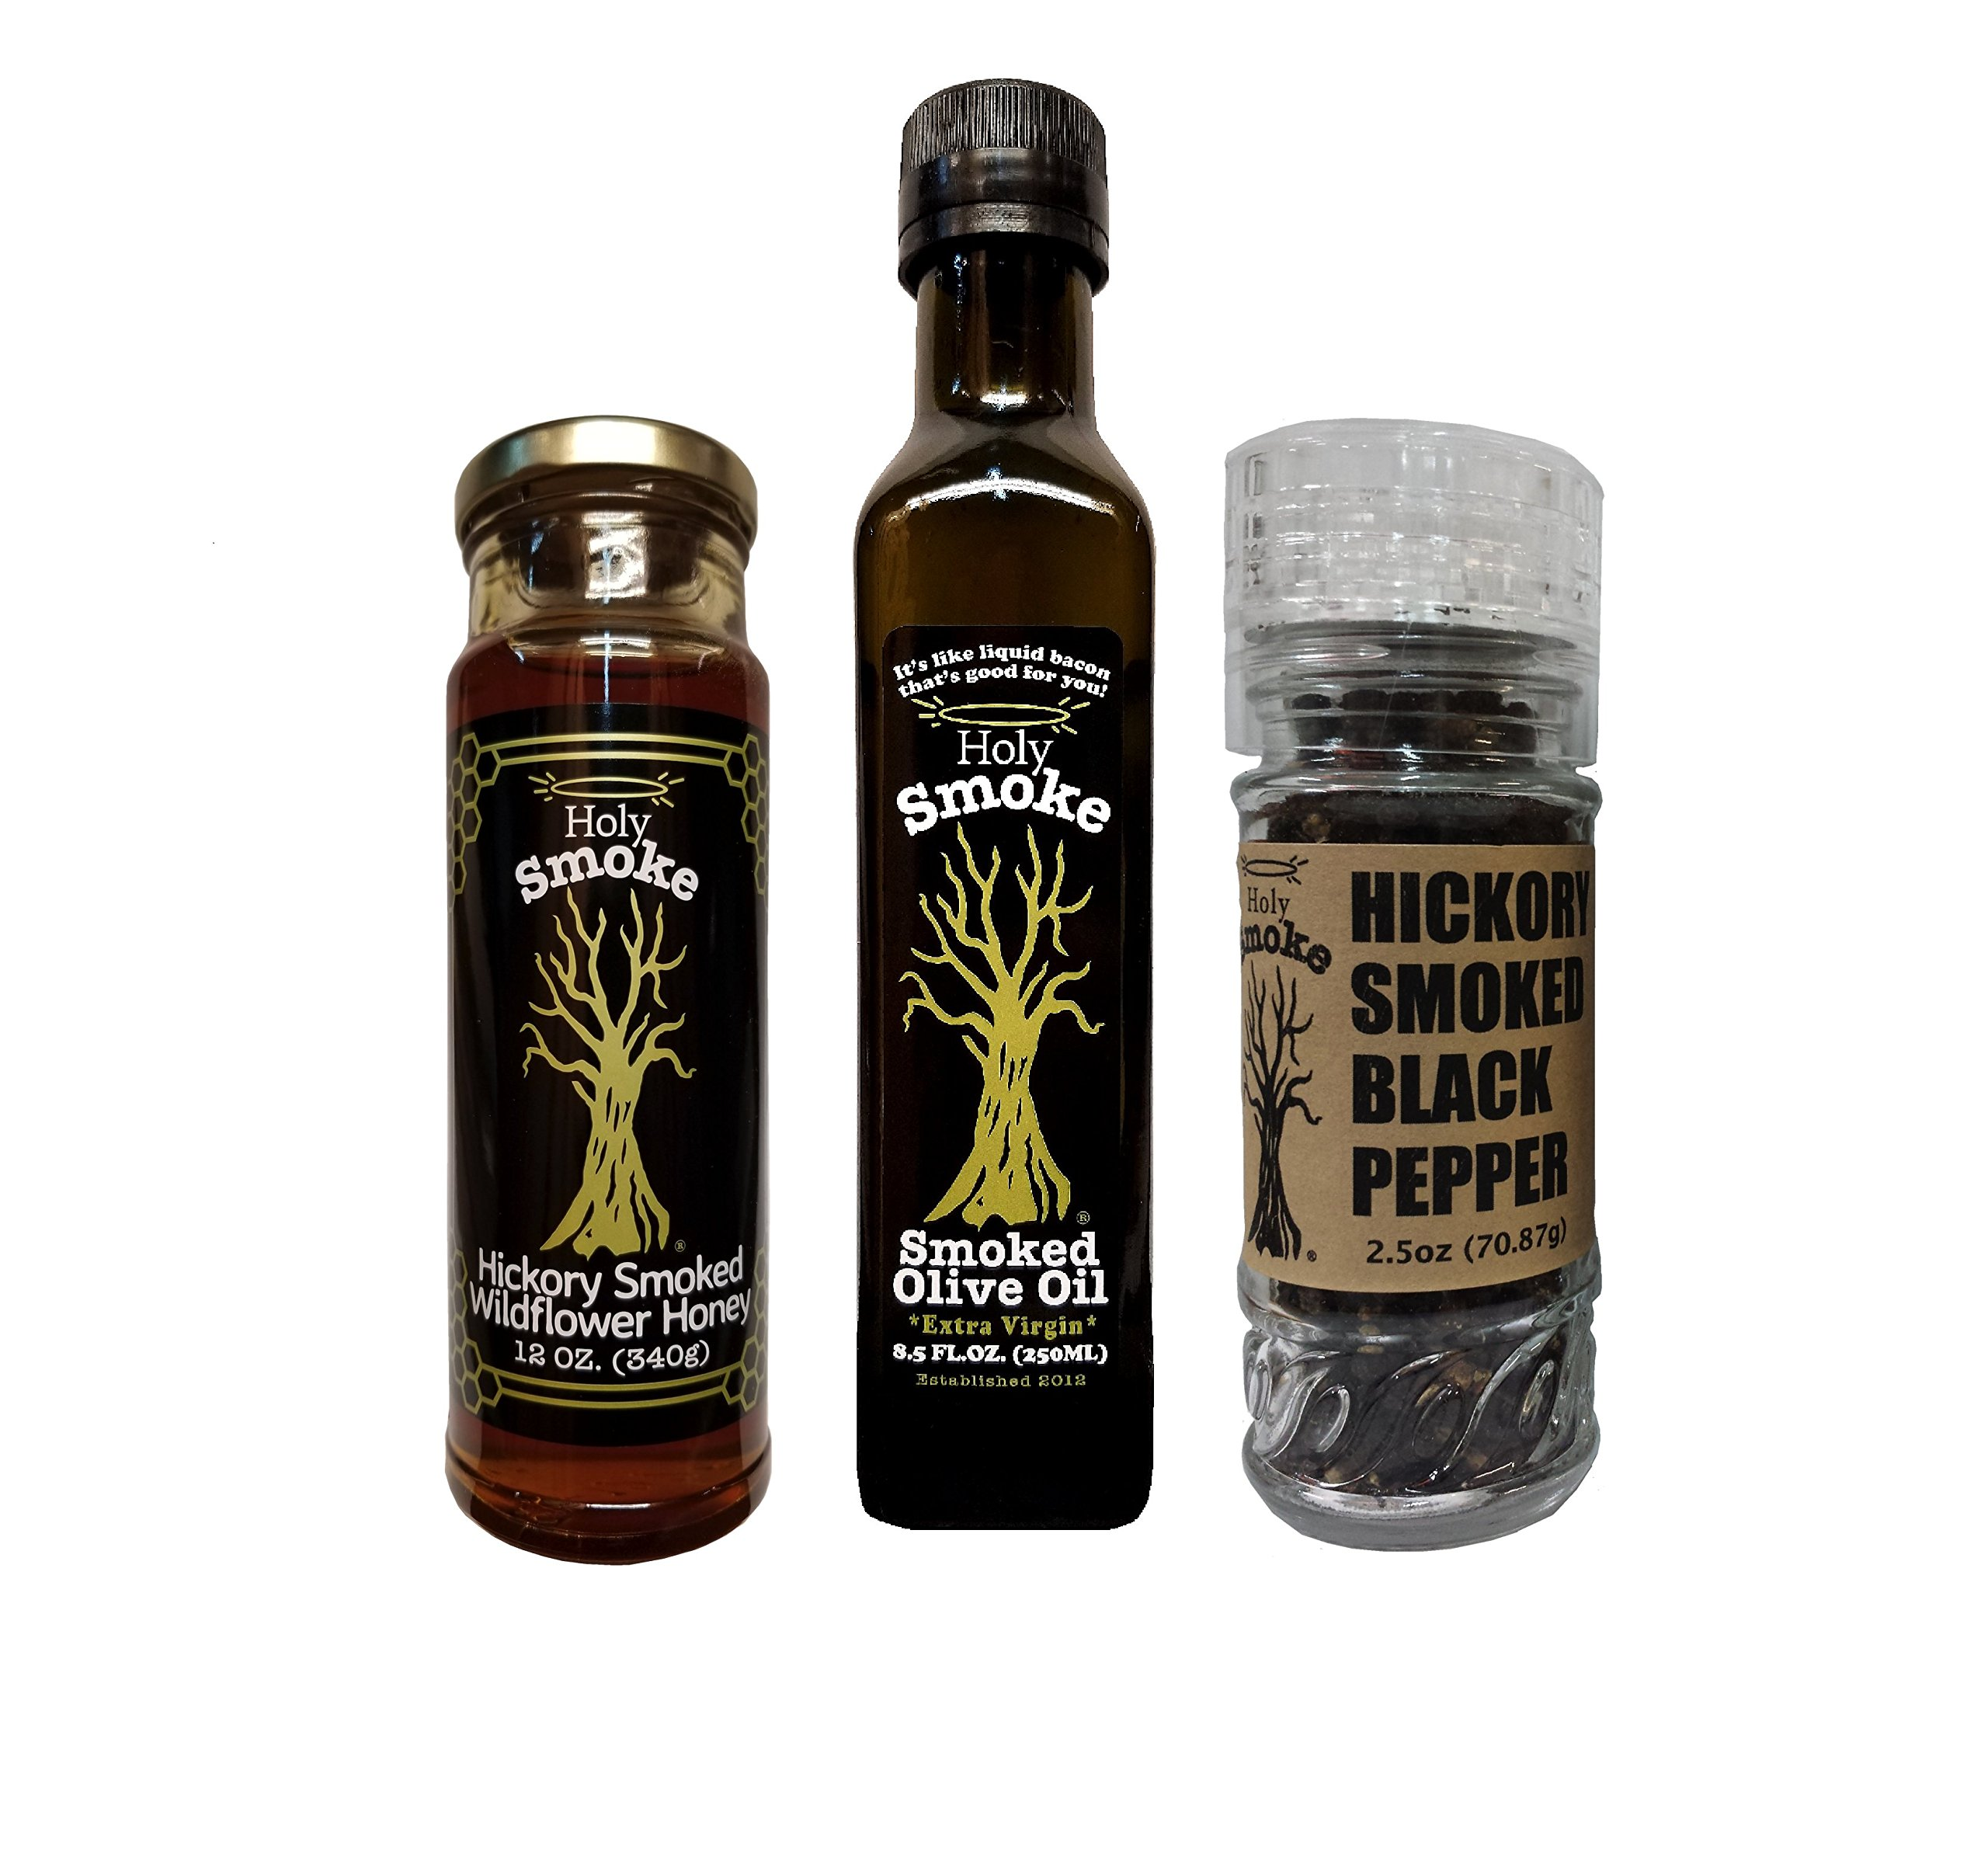 Holy Smoke Family of Smoked Products Gift Set - EVOO 8.5 oz, Pepper 1.7 oz, Hickory Honey 12 oz.